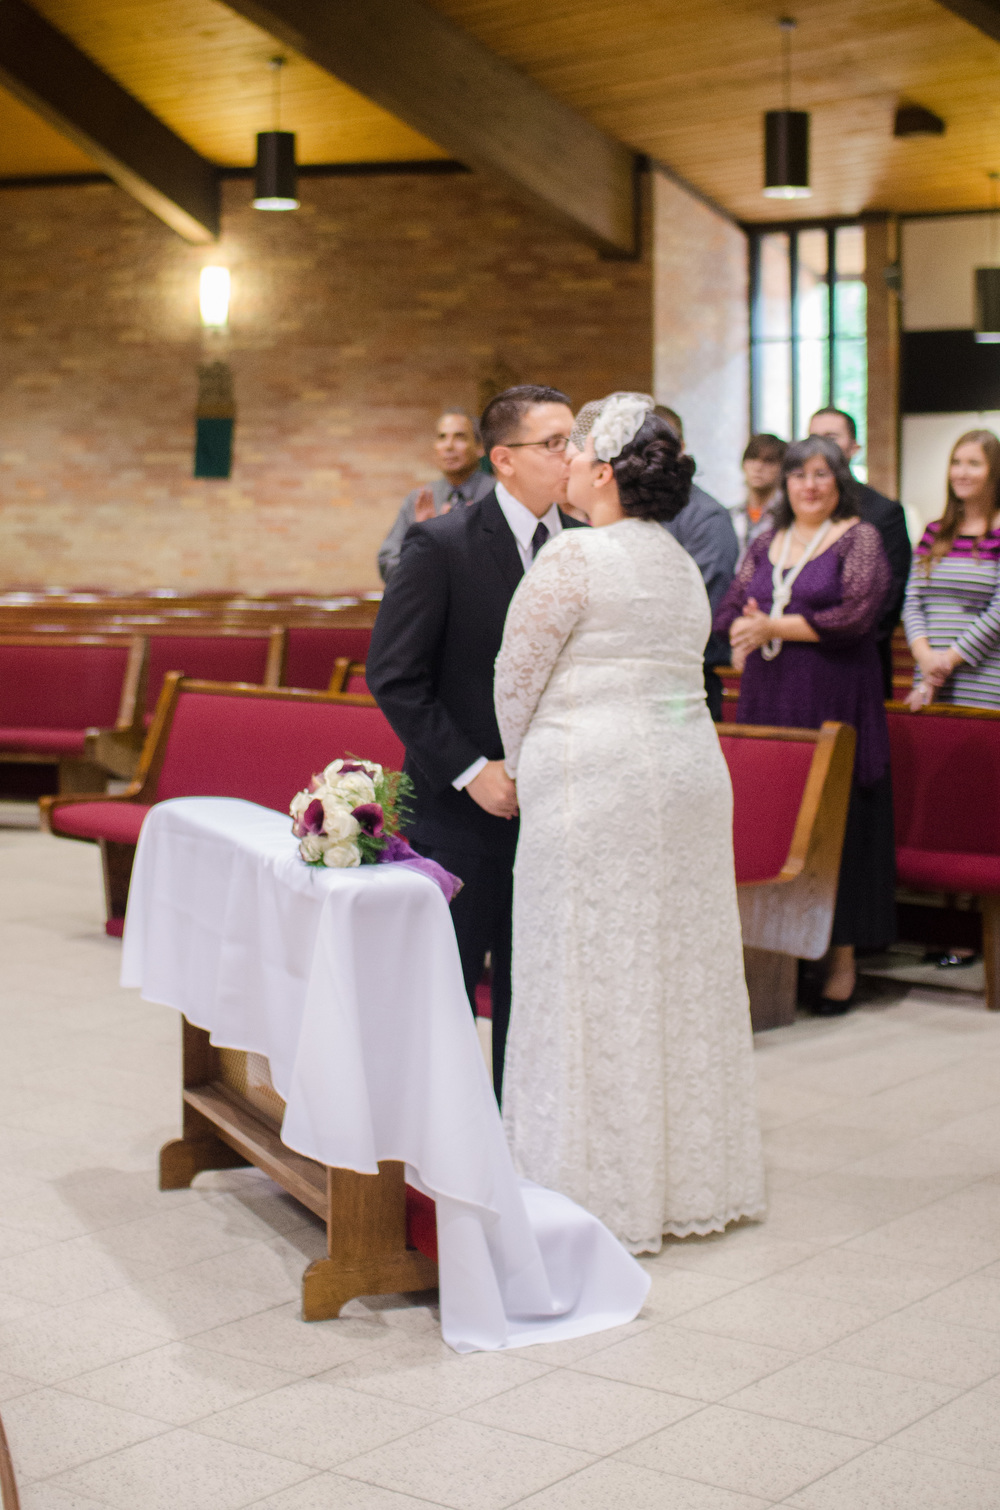 Bri-and-Garett-Wedding-90.jpg